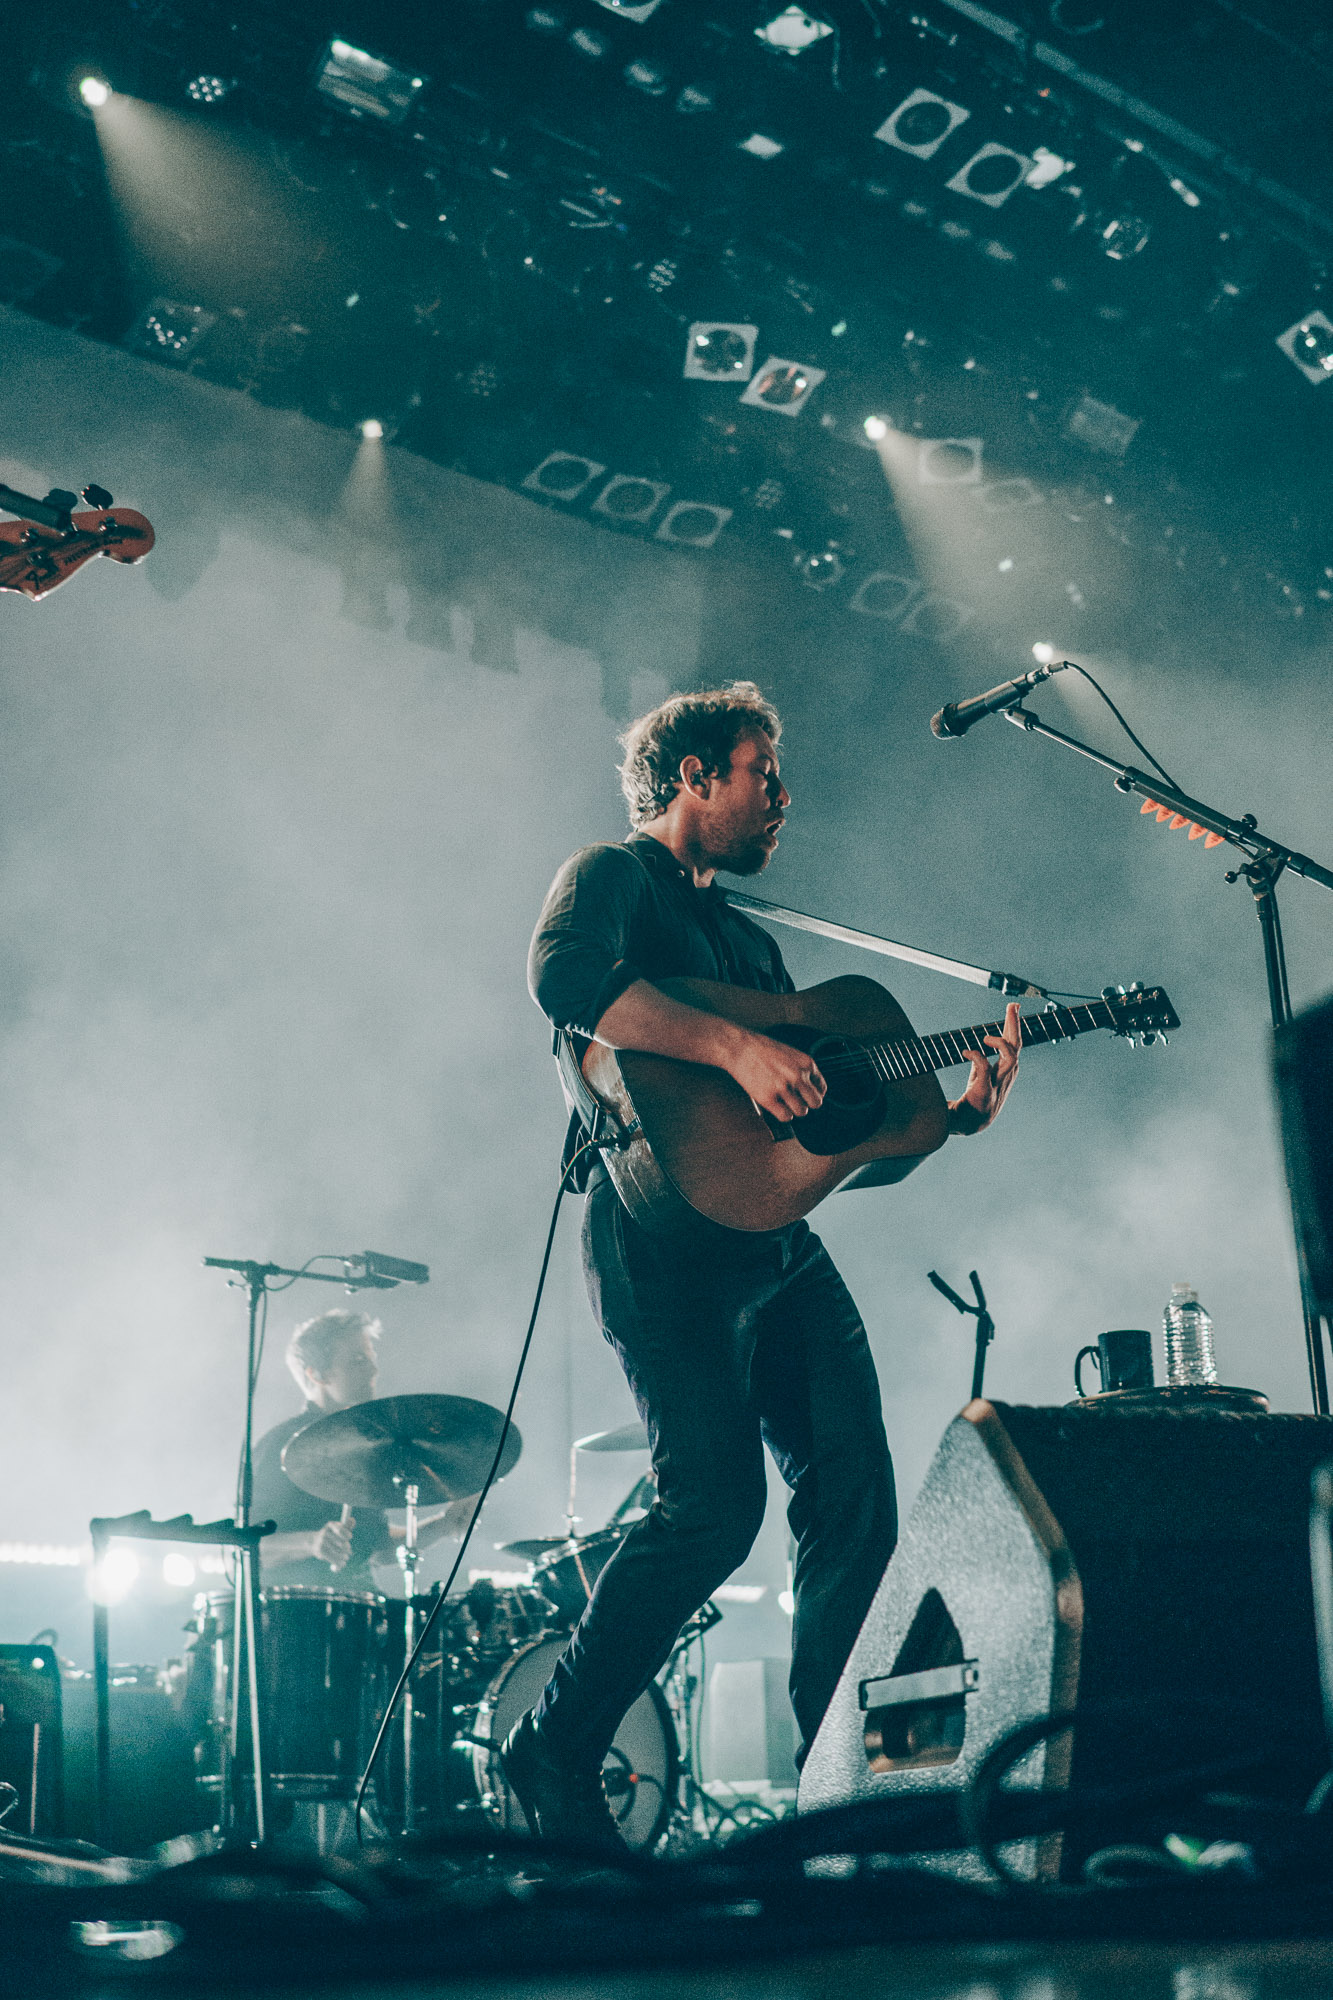 Fleet Foxes (by Britton Strickland)